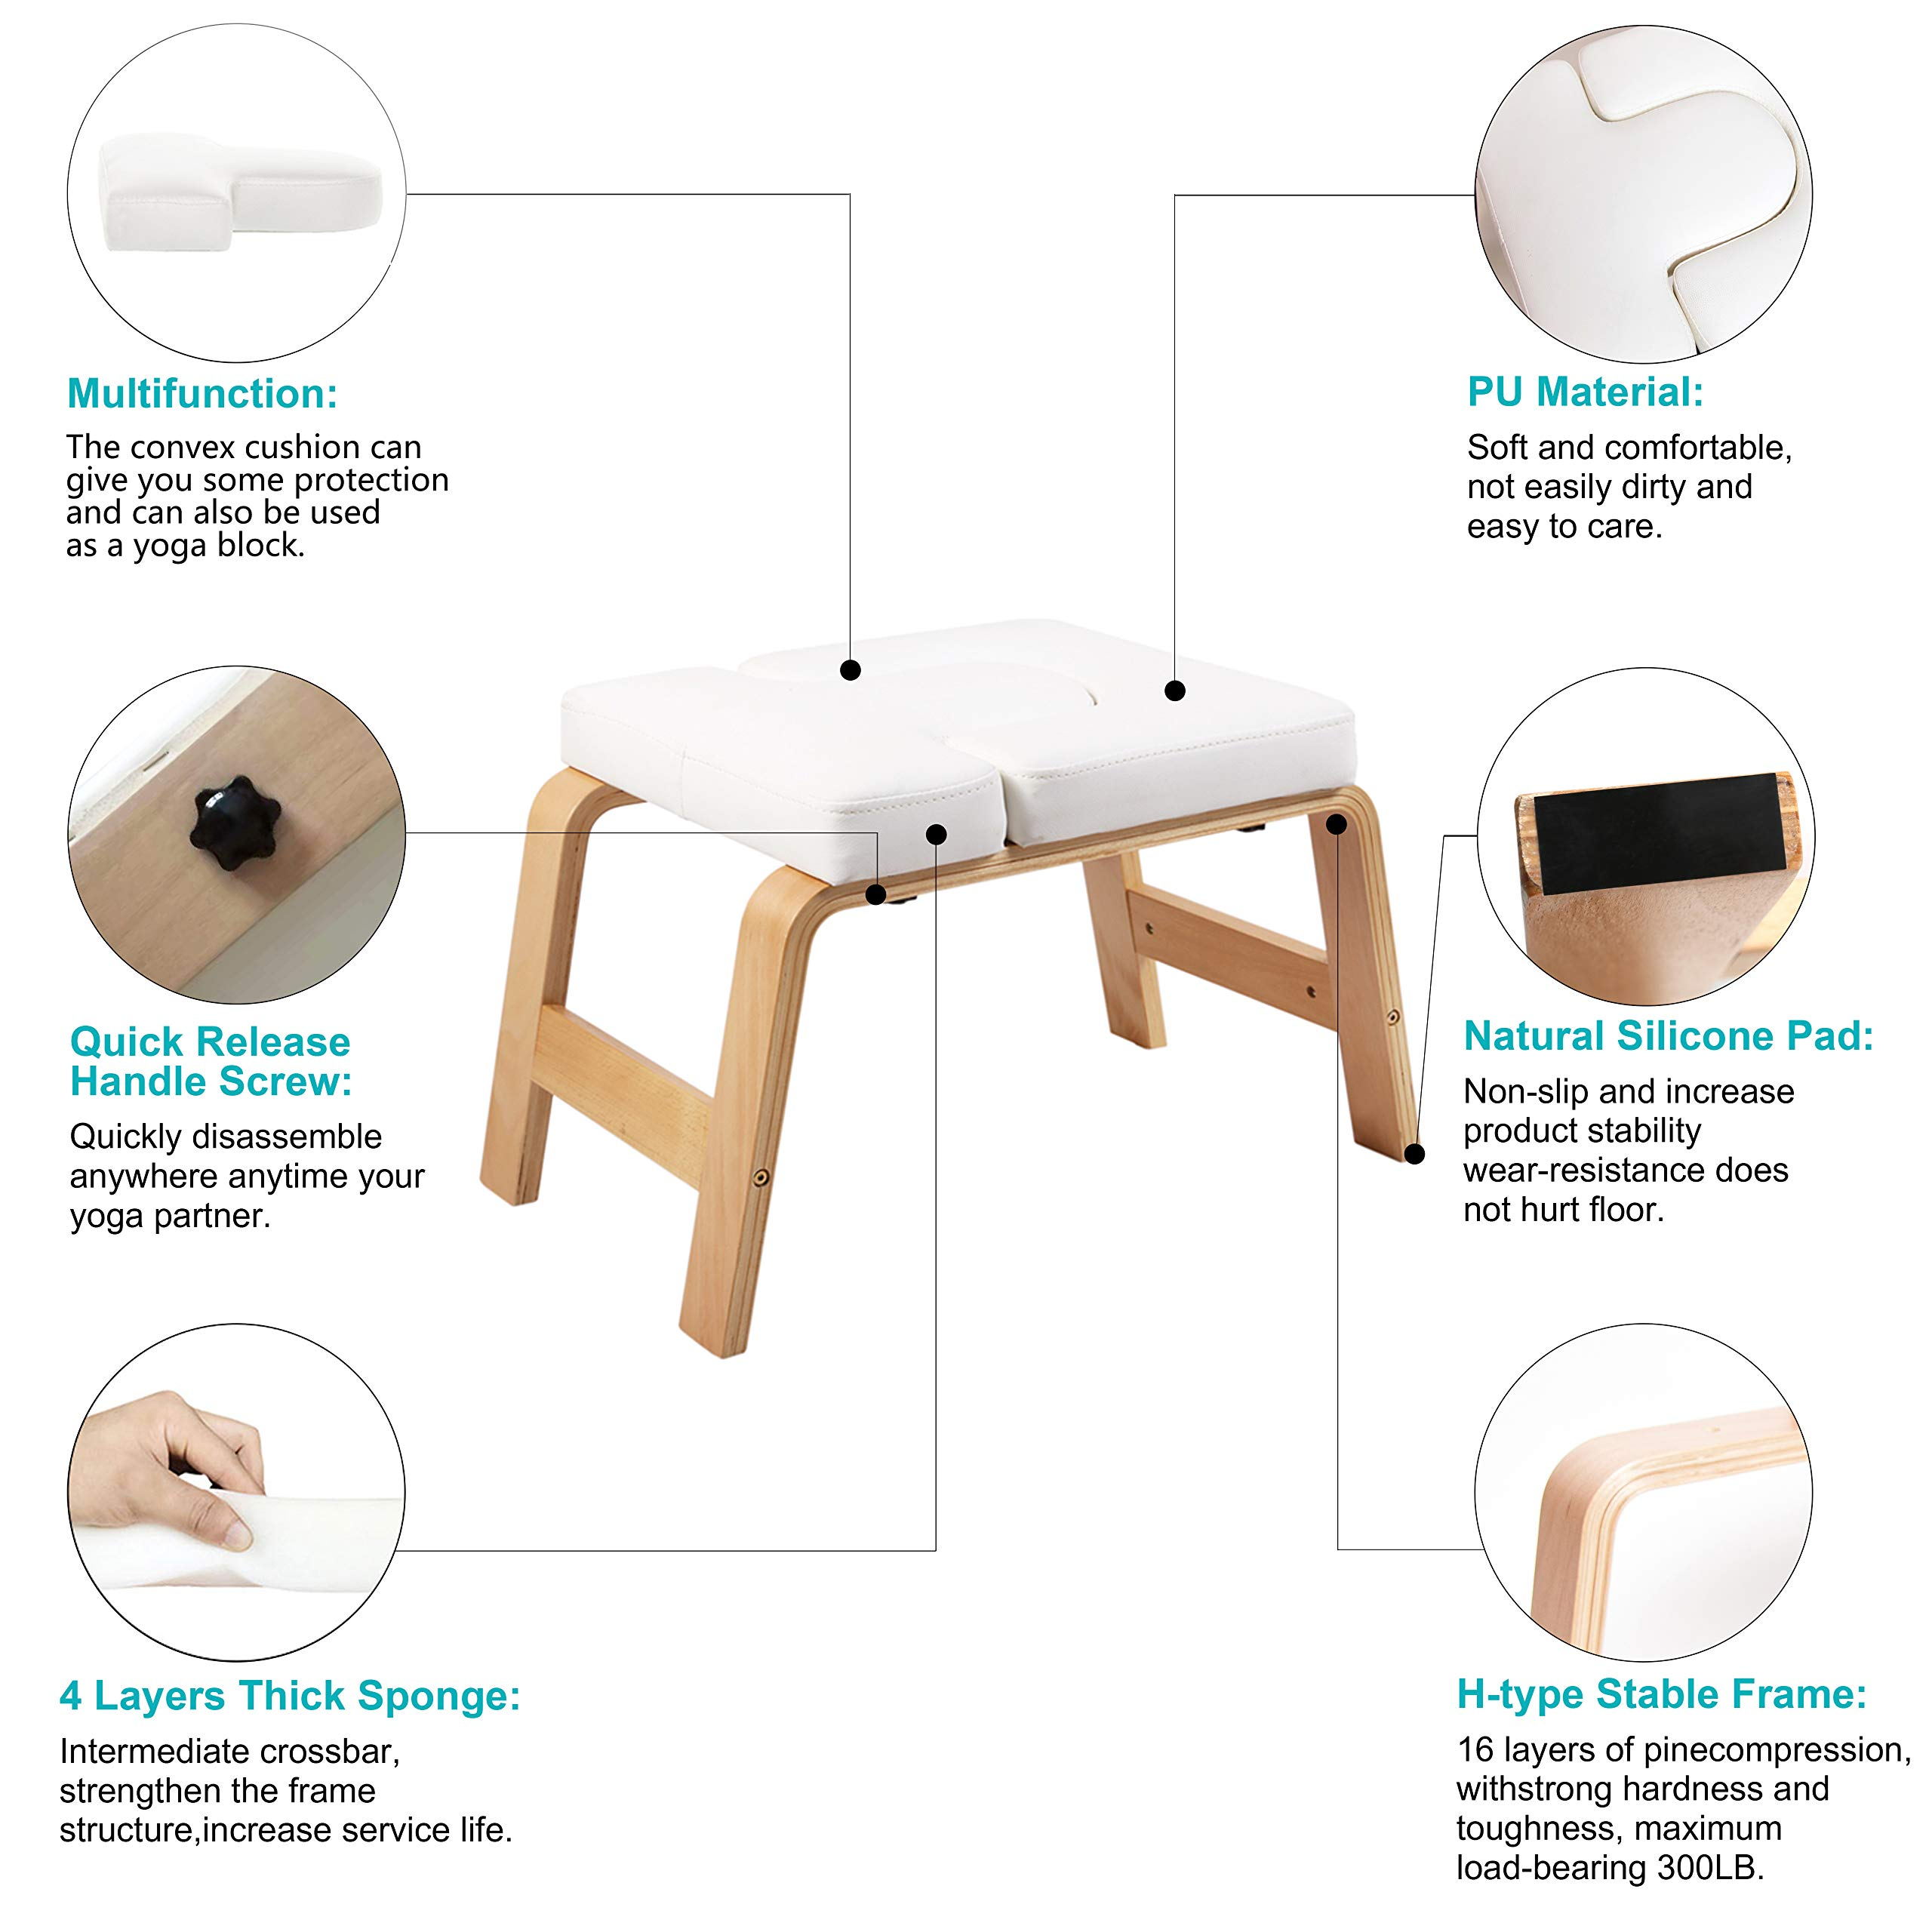 Desire Life Yoga Headstand Bench - Stand Yoga Chair for Family, Gym - Wood and PU Pads - Relieve Fatigue and Build Up Body (White) by Desire Life (Image #4)